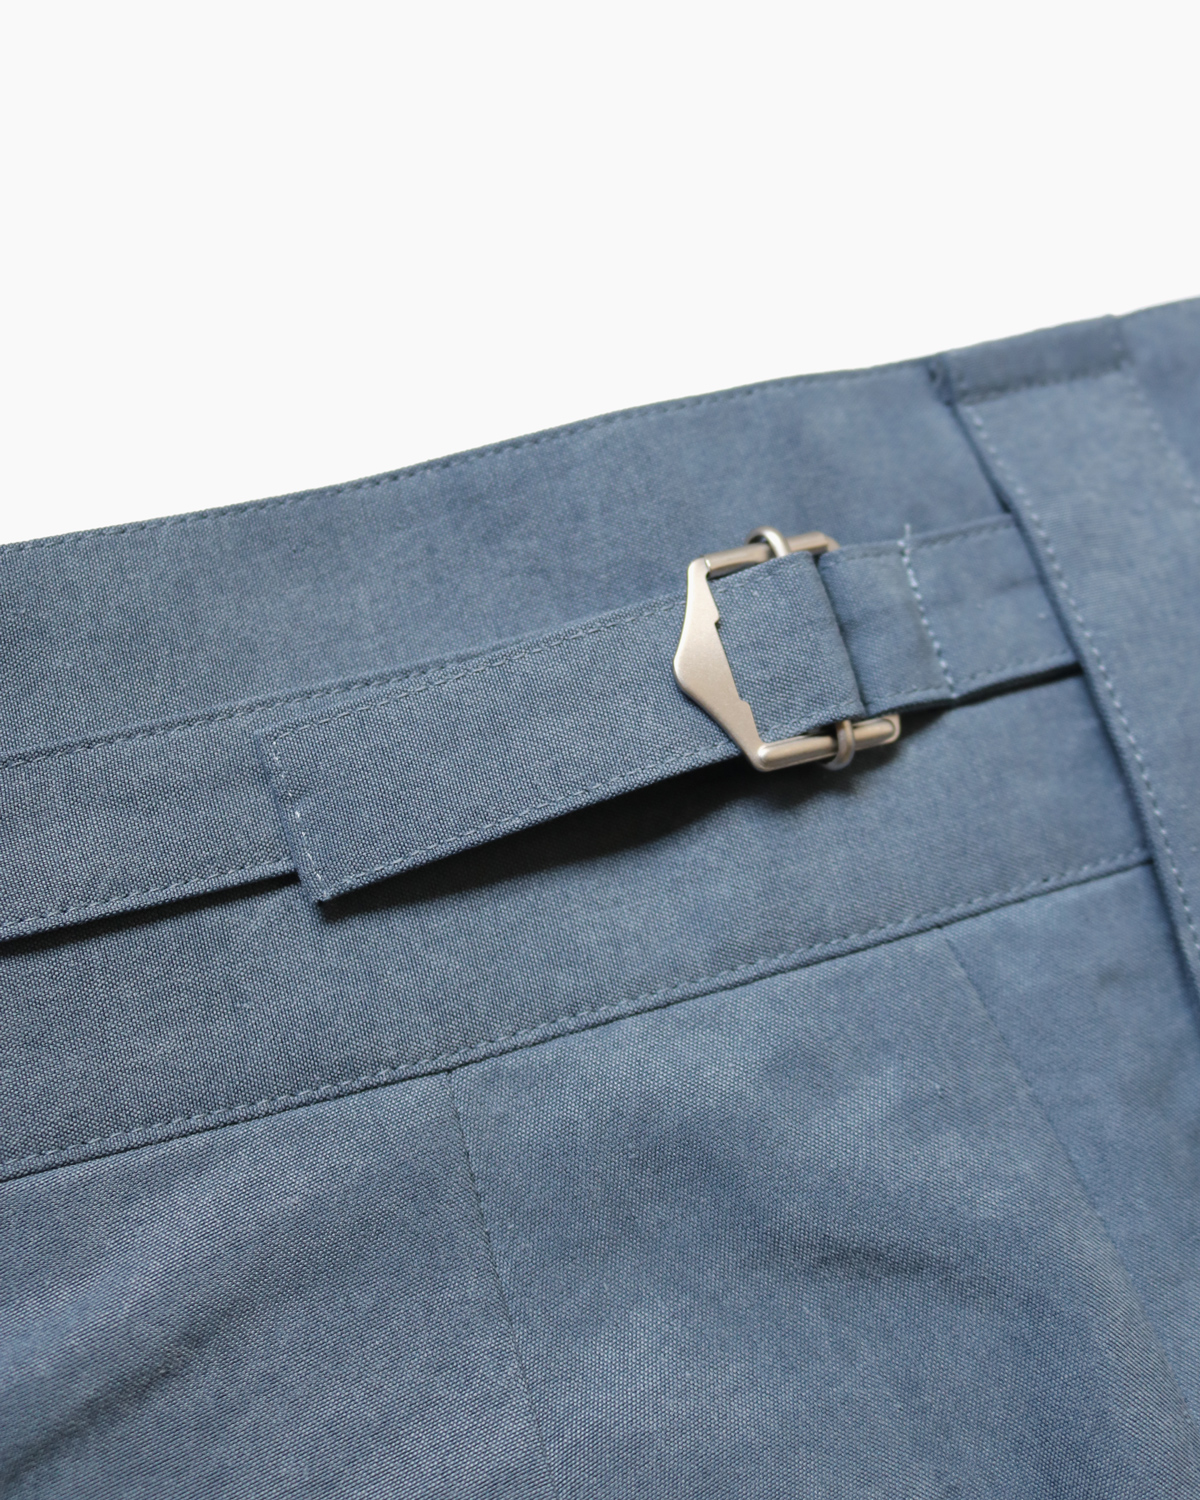 CELLULOSE NIDOM|BELTLESS - Blue Gray|NEAT